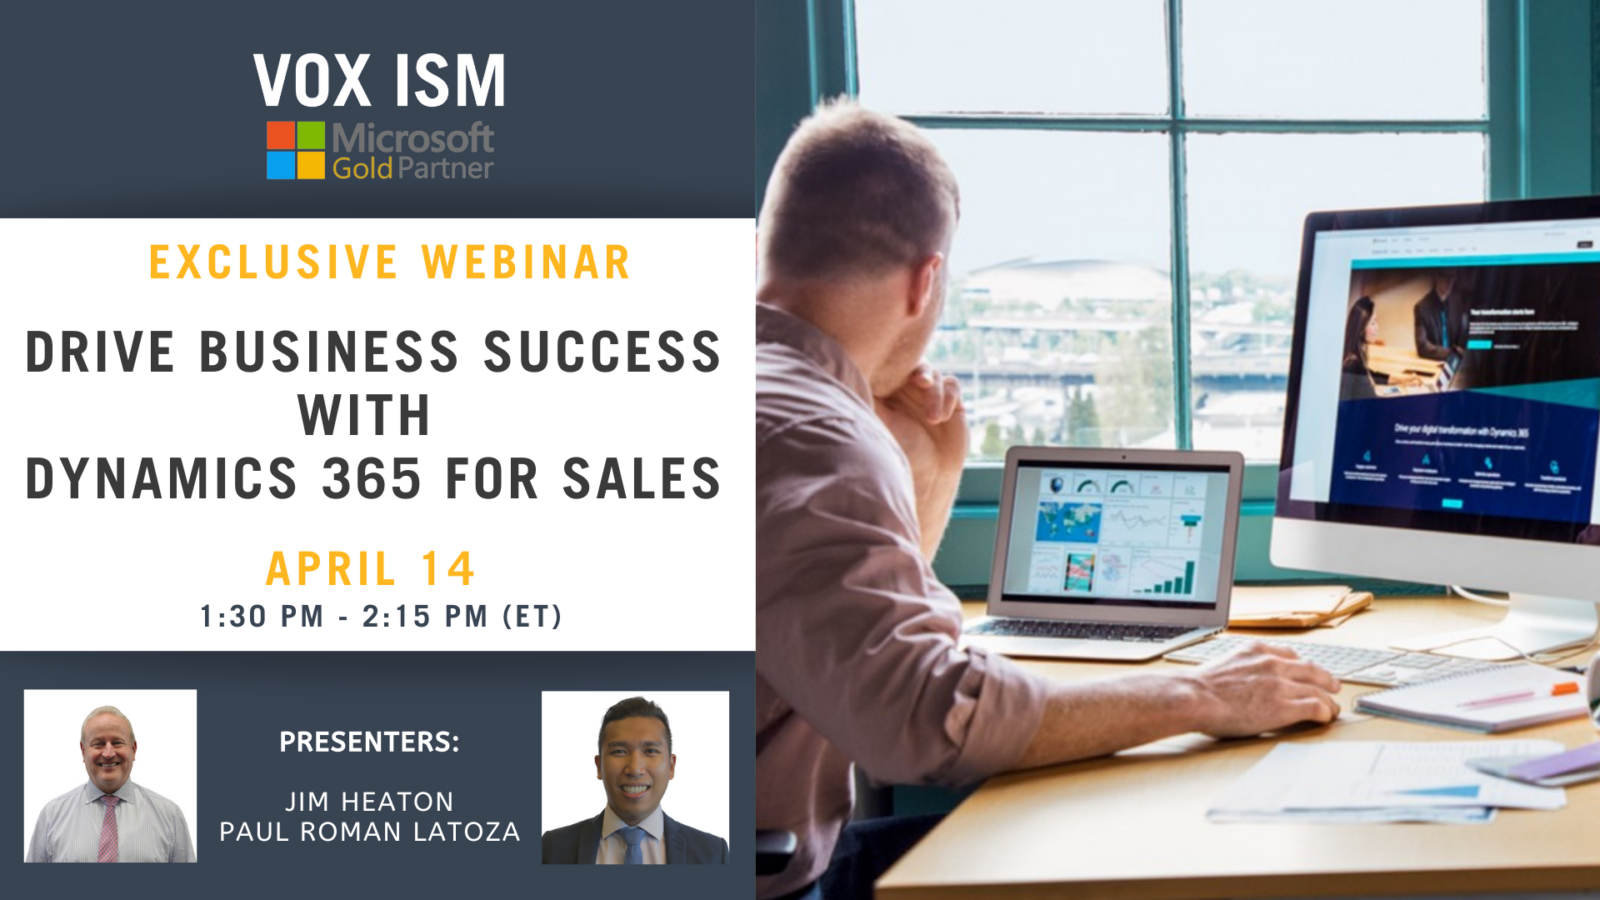 Drive Business Success with Dynamics 365 for Sales - April 14 - Webinar